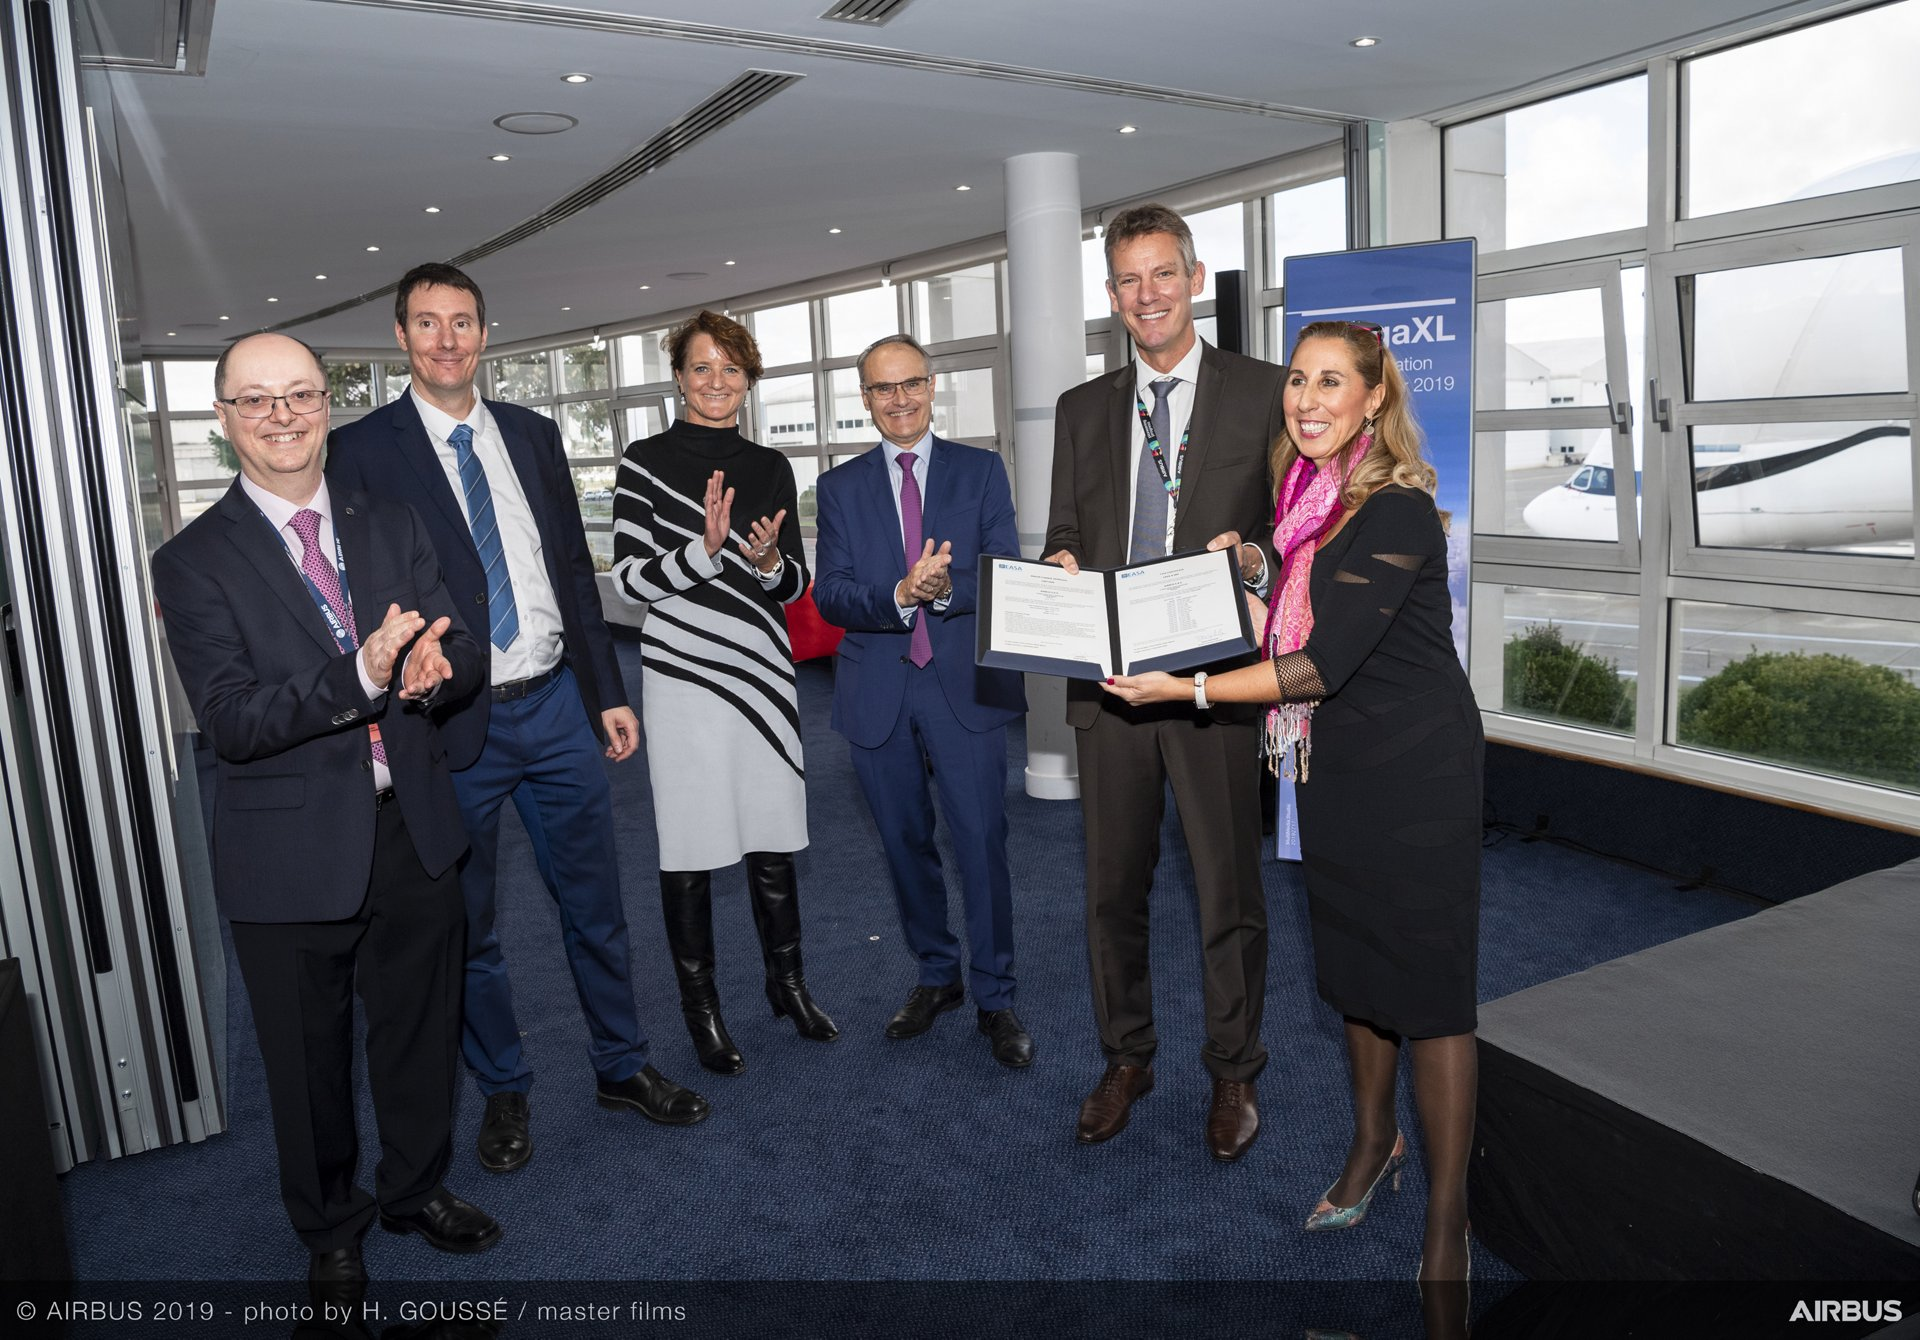 Celebrating the BelugaXL airlifter's Type Certification in November 2019 are, from left to right: Florentino Bascunana, BelugaXL Project Certification Manager at EASA; Sébastien Freissinet, Airbus BelugaXL Type Certification Manager; Veronique Roca, Airbus BelugaXL Technical Director and Chief Engineer; Bertrand George, Airbus Sr. VP & Head of BelugaXL Programme; Jean-Brice Dumont, Airbus Executive VP - Engineering; Carla Iorio, EASA, Head of CT1.4 Special Aeroplanes & Projects